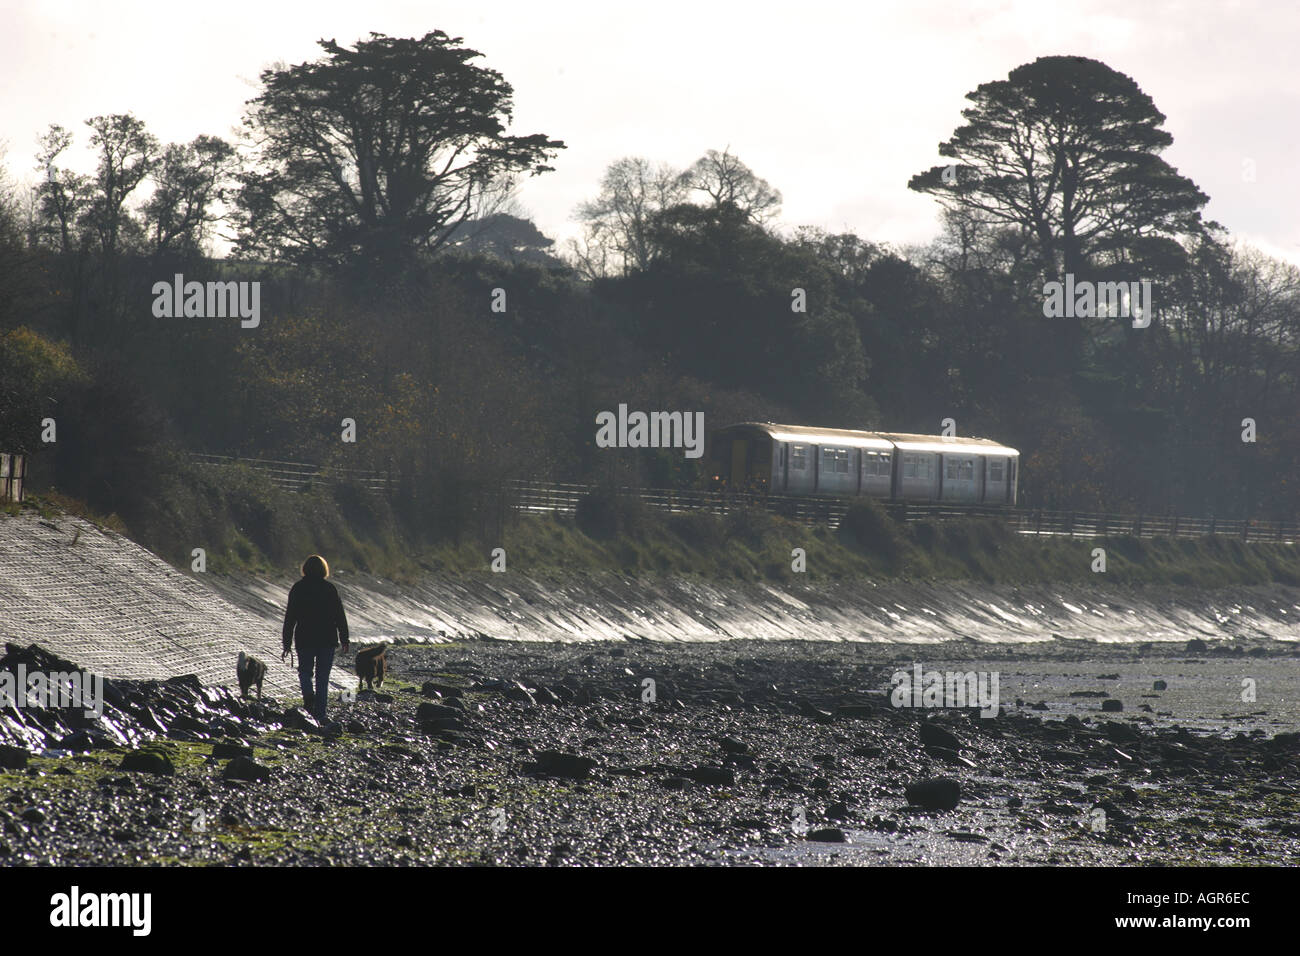 A walker is passed by a train on the Exmouth to Exeter branch line along the River Exe Estuary Devon - Stock Image